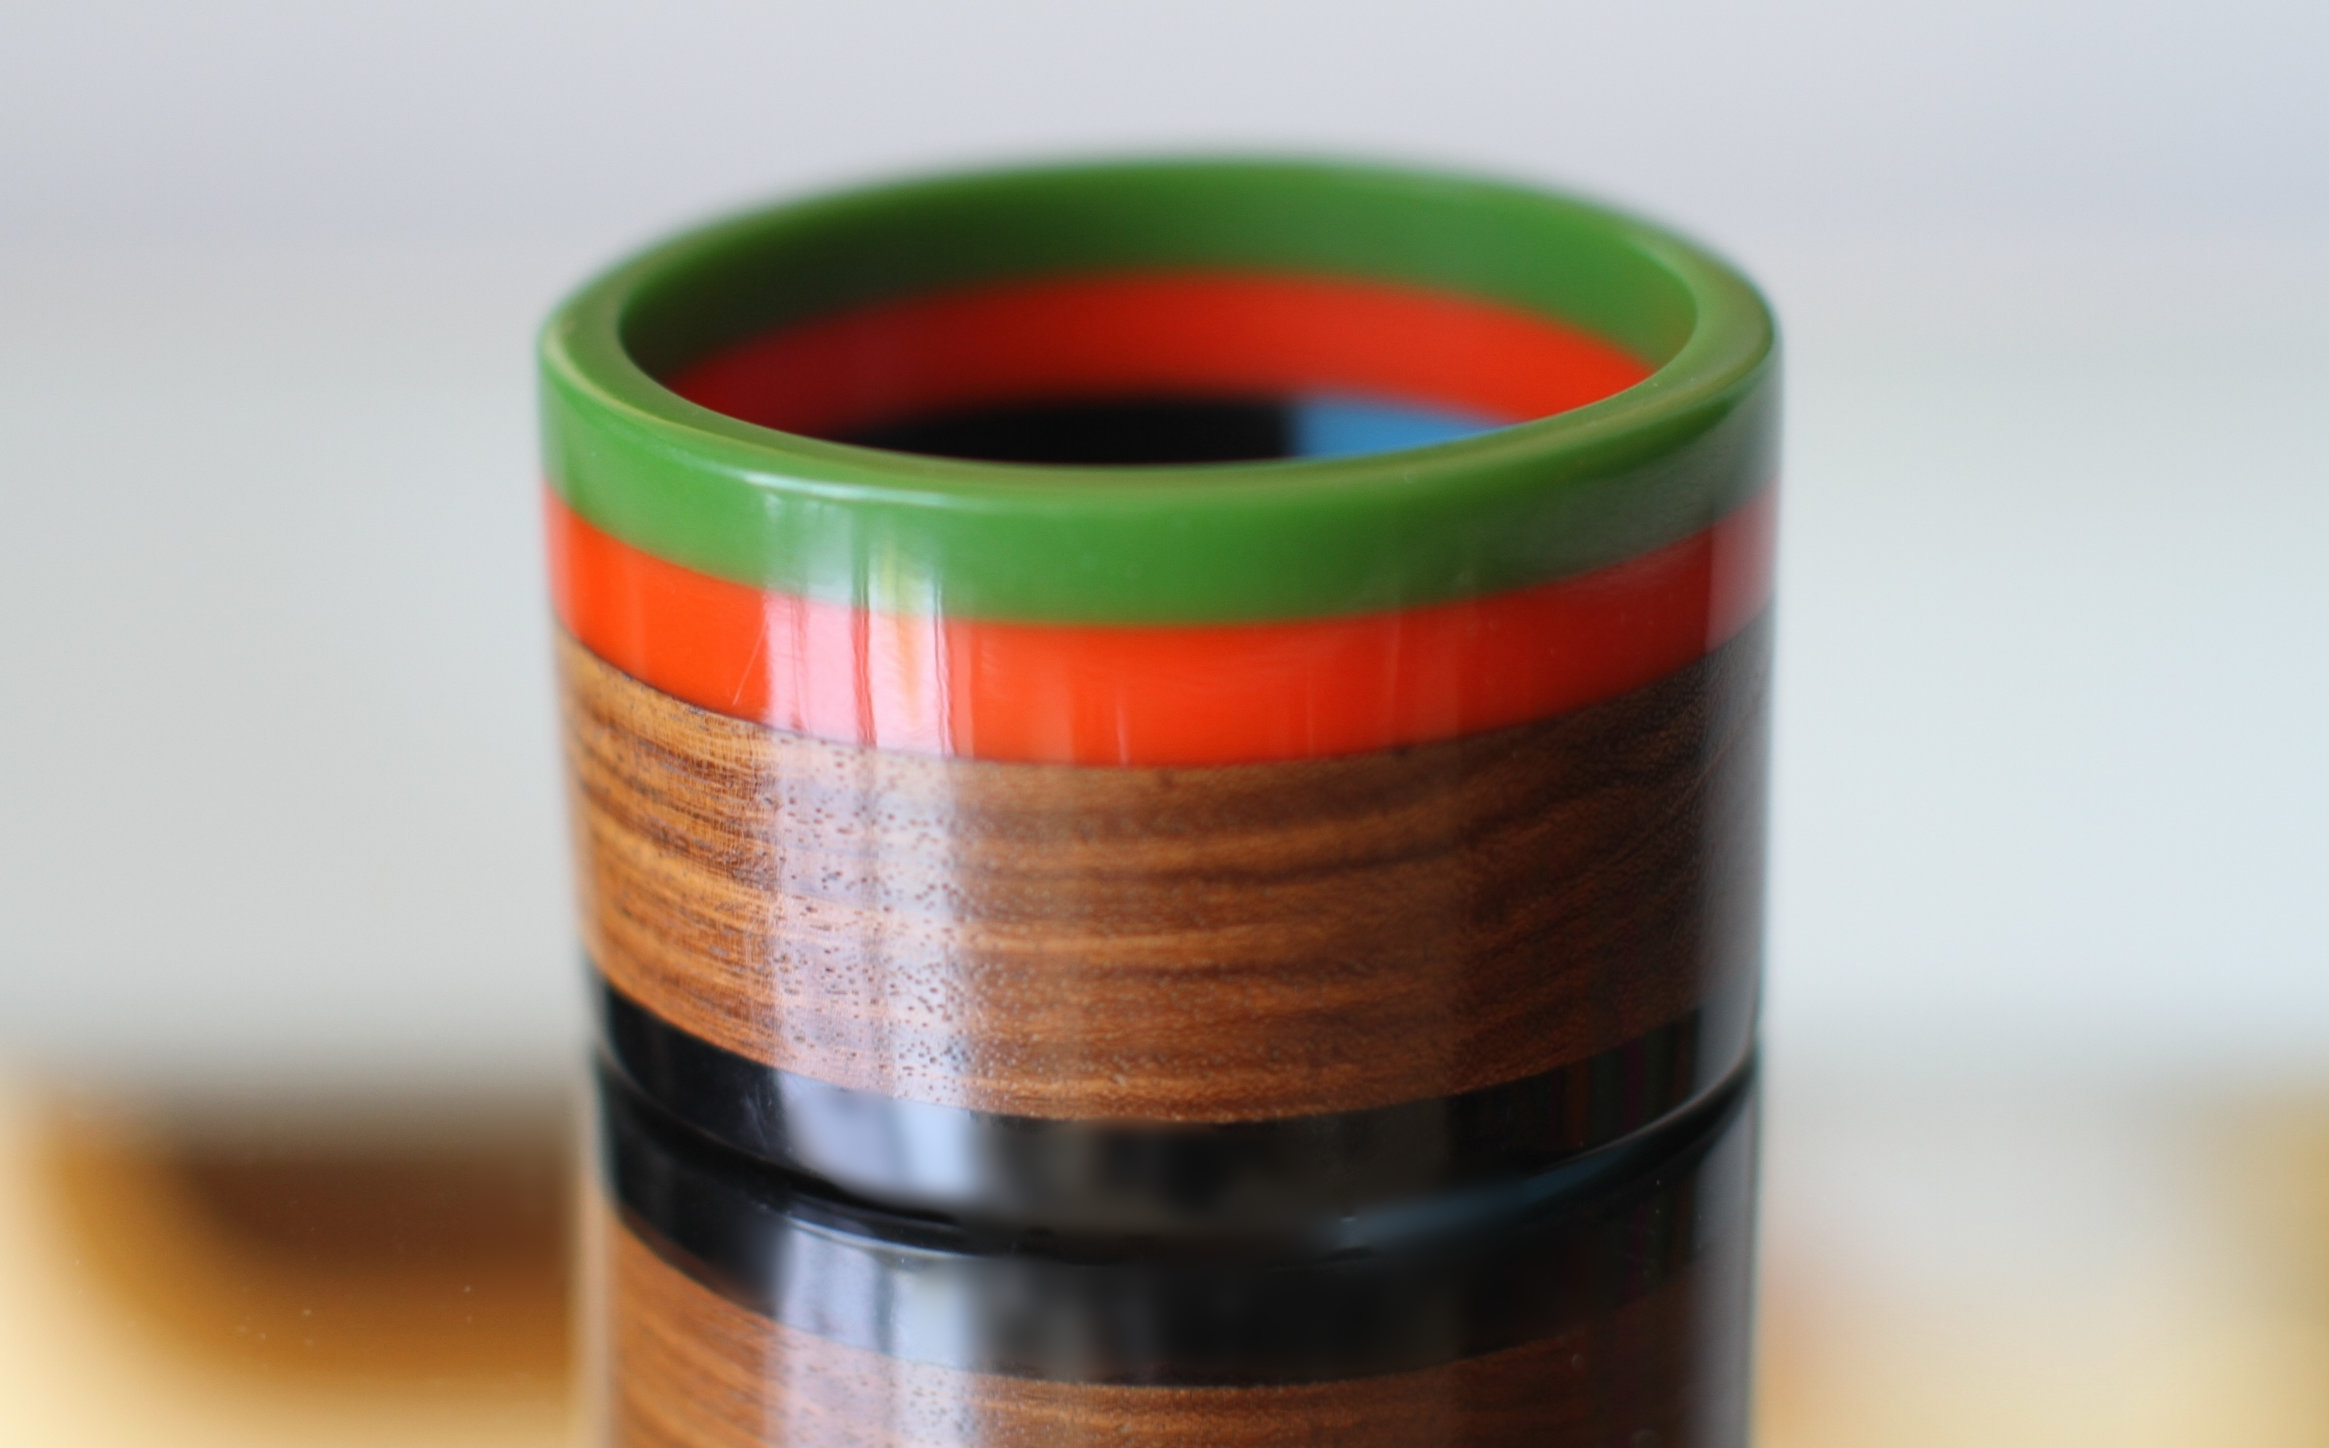 Large Multicolor Resin, Wood And Ebony Color Blocked Bangle Bracelet .jpg